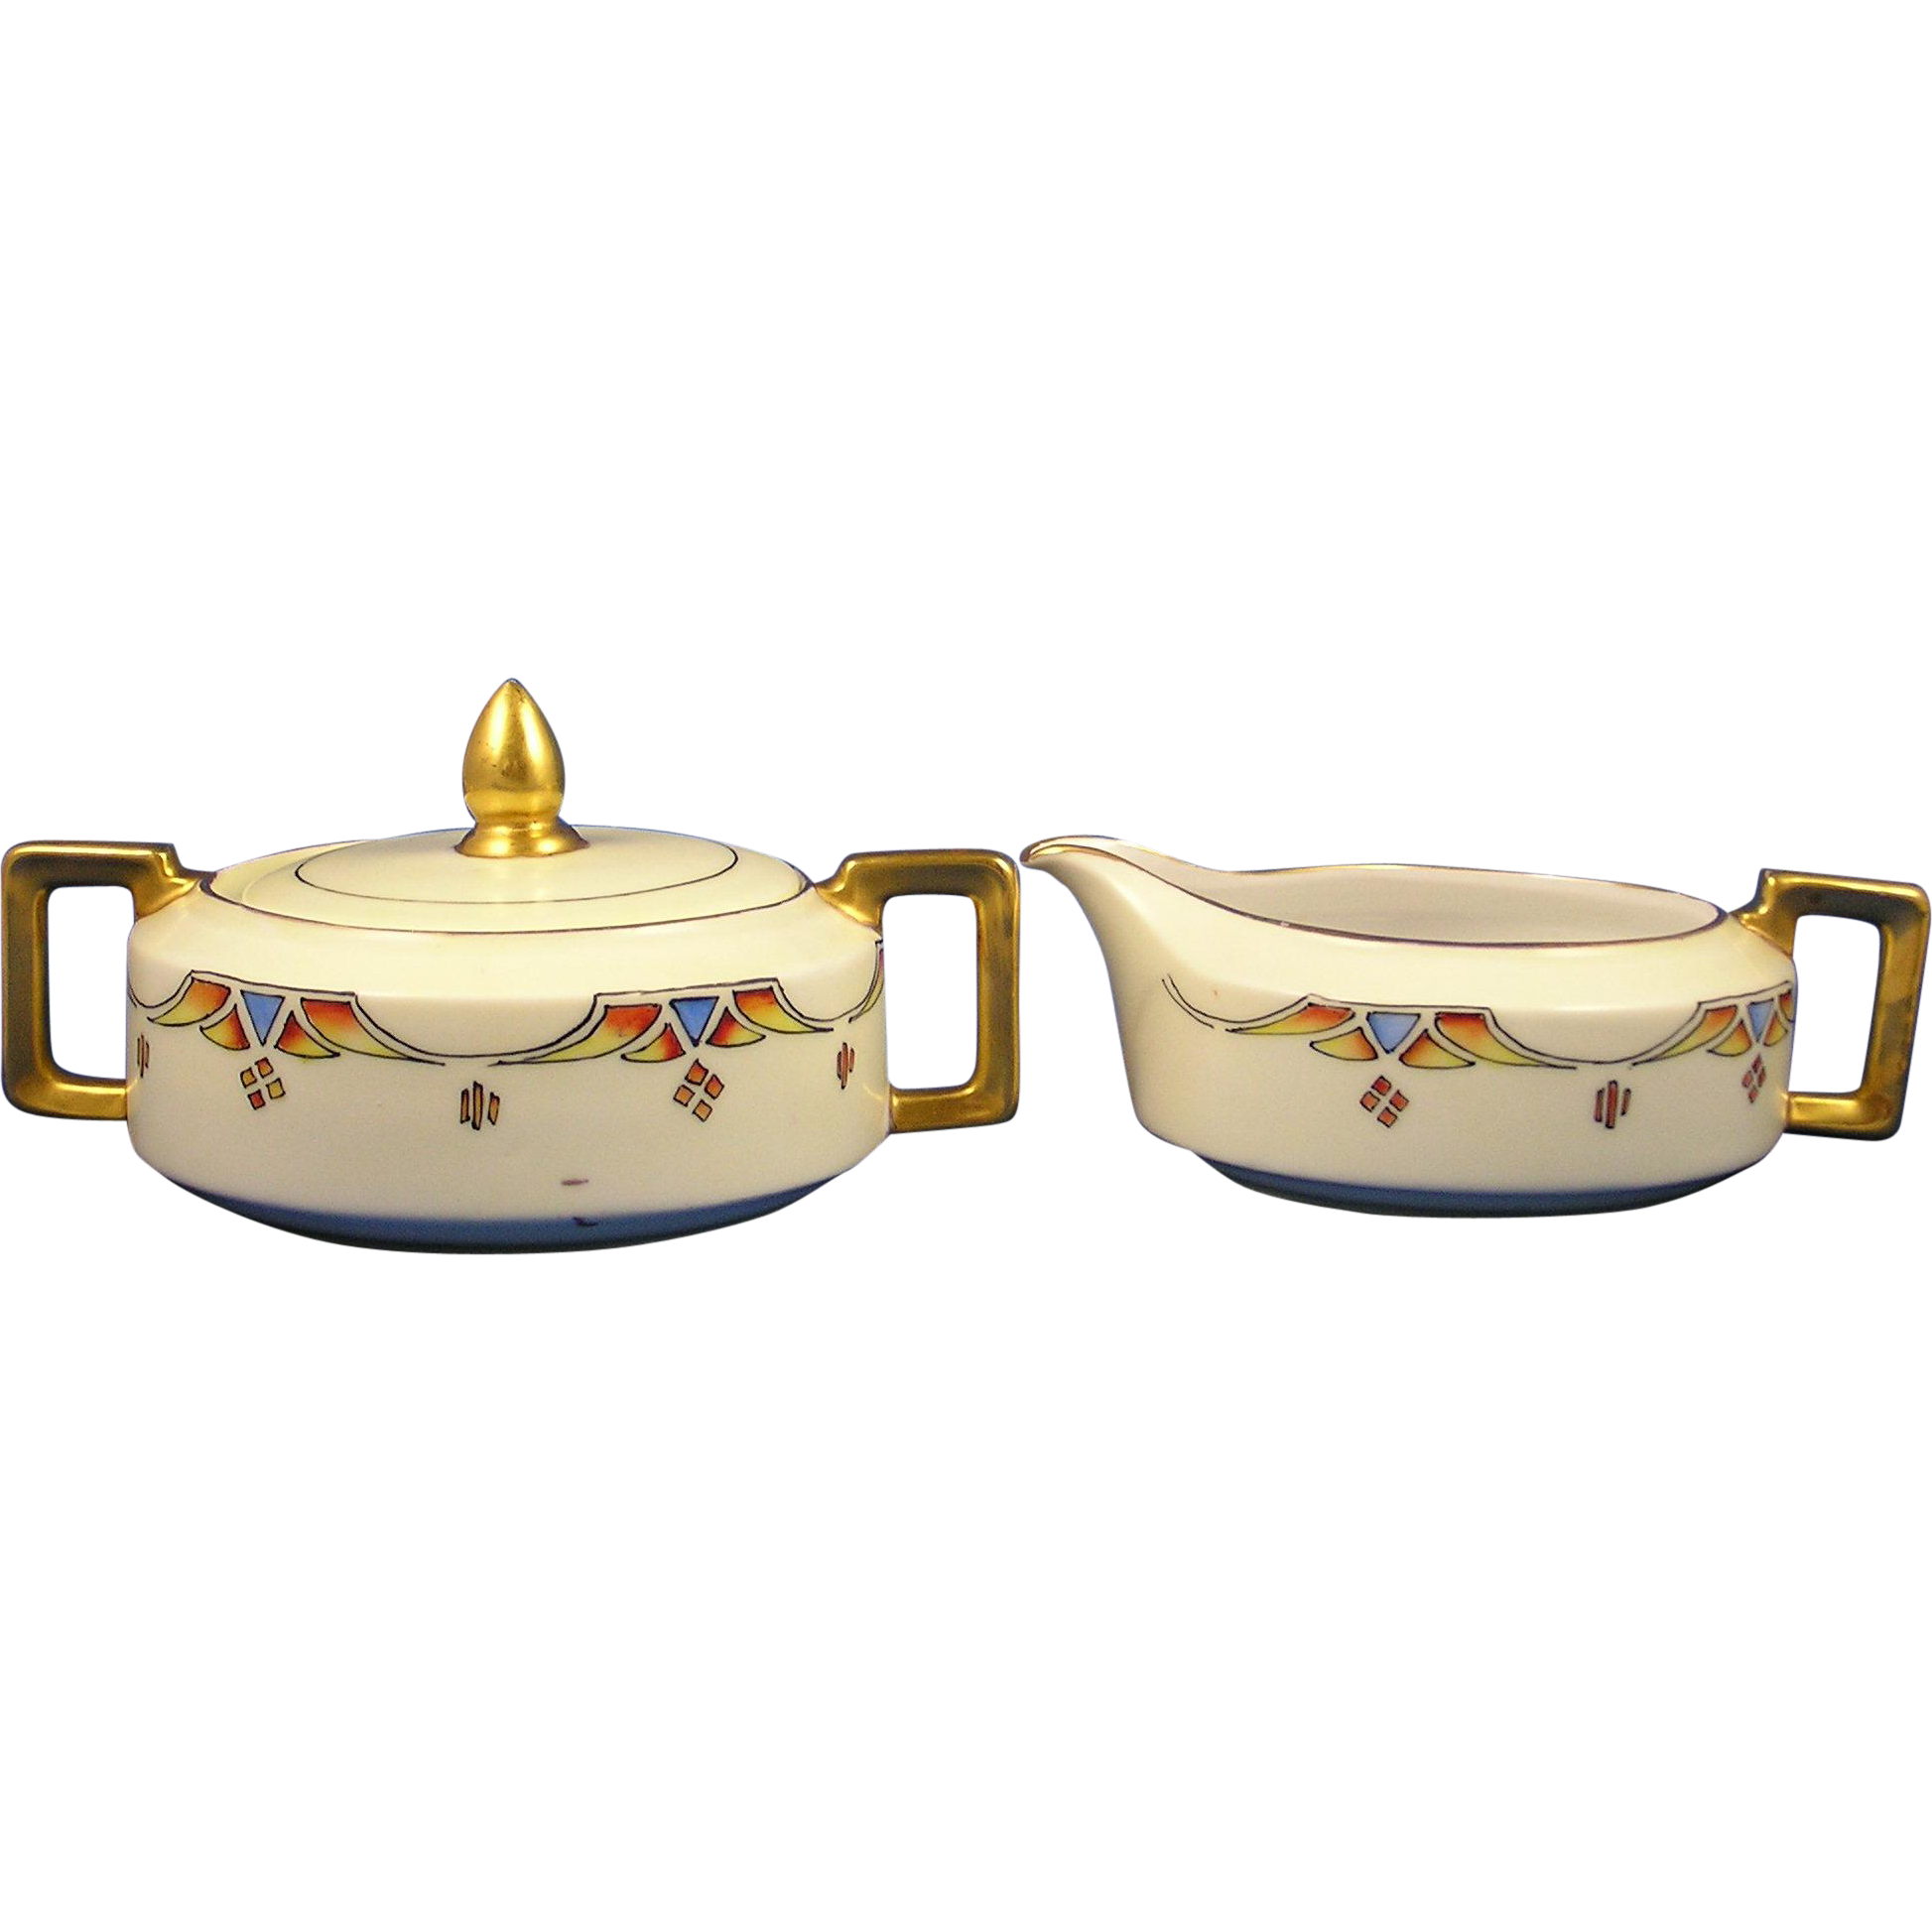 Heinrich & Co. (H&Co.) Selb Bavaria Art Deco Creamer & Sugar Set (c.1910-1935)